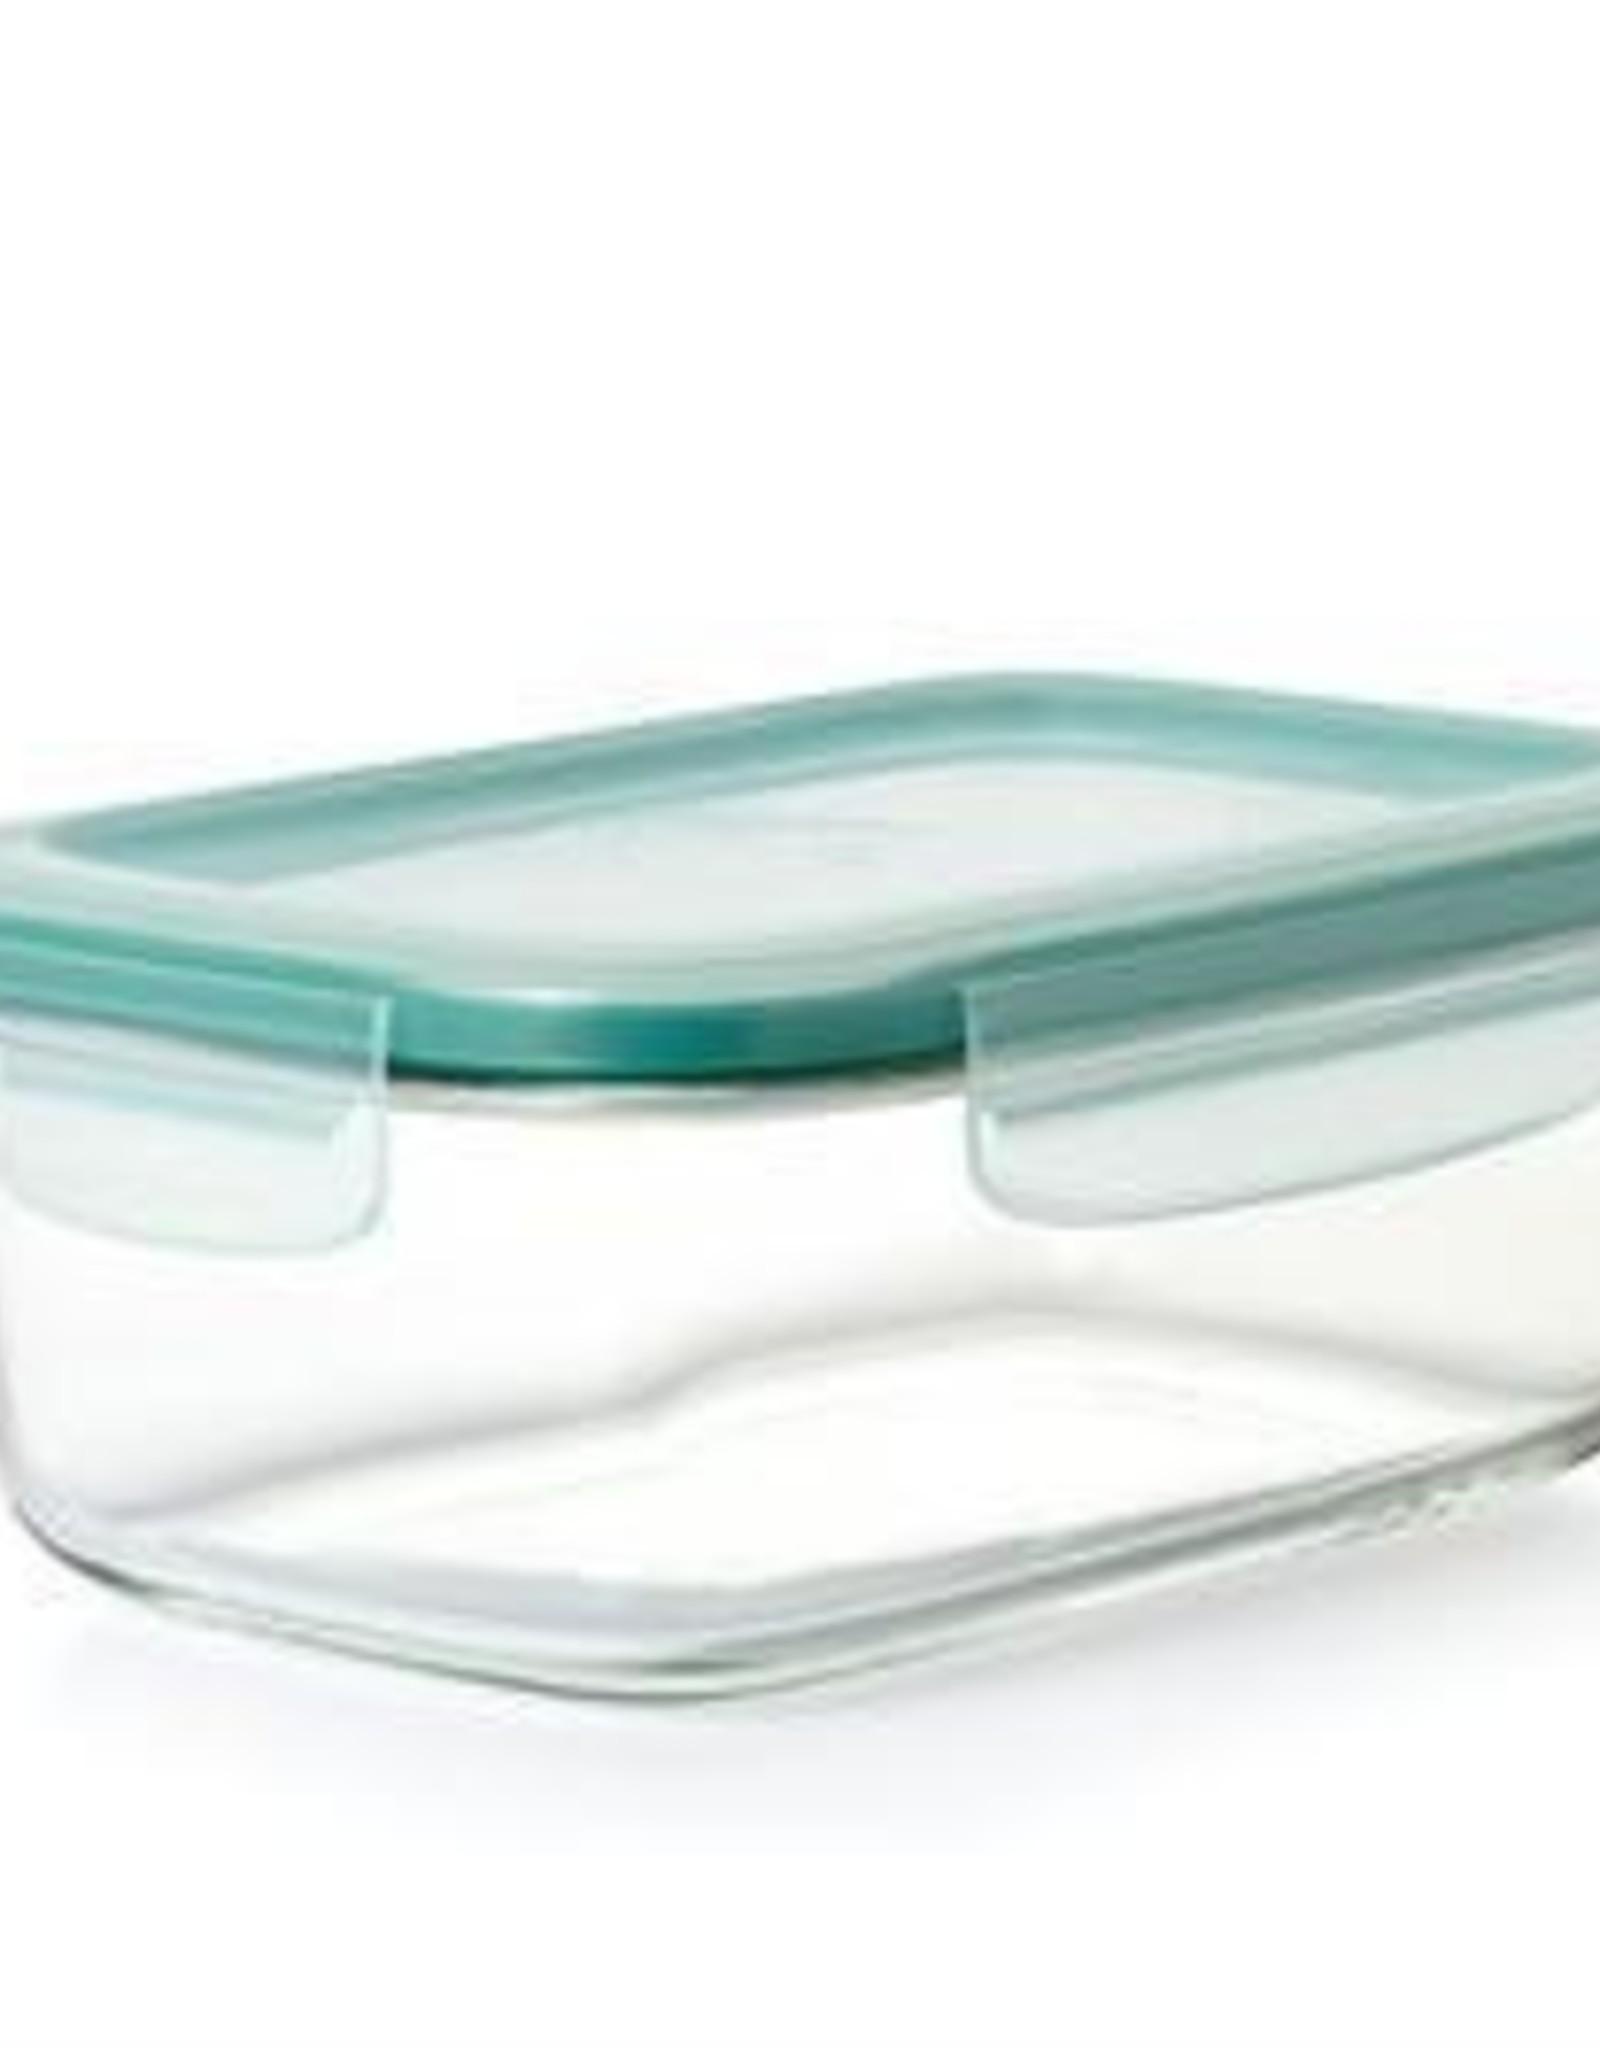 OXO SmartSeal Glass Rectangular Container w/Lid, 1.6cup